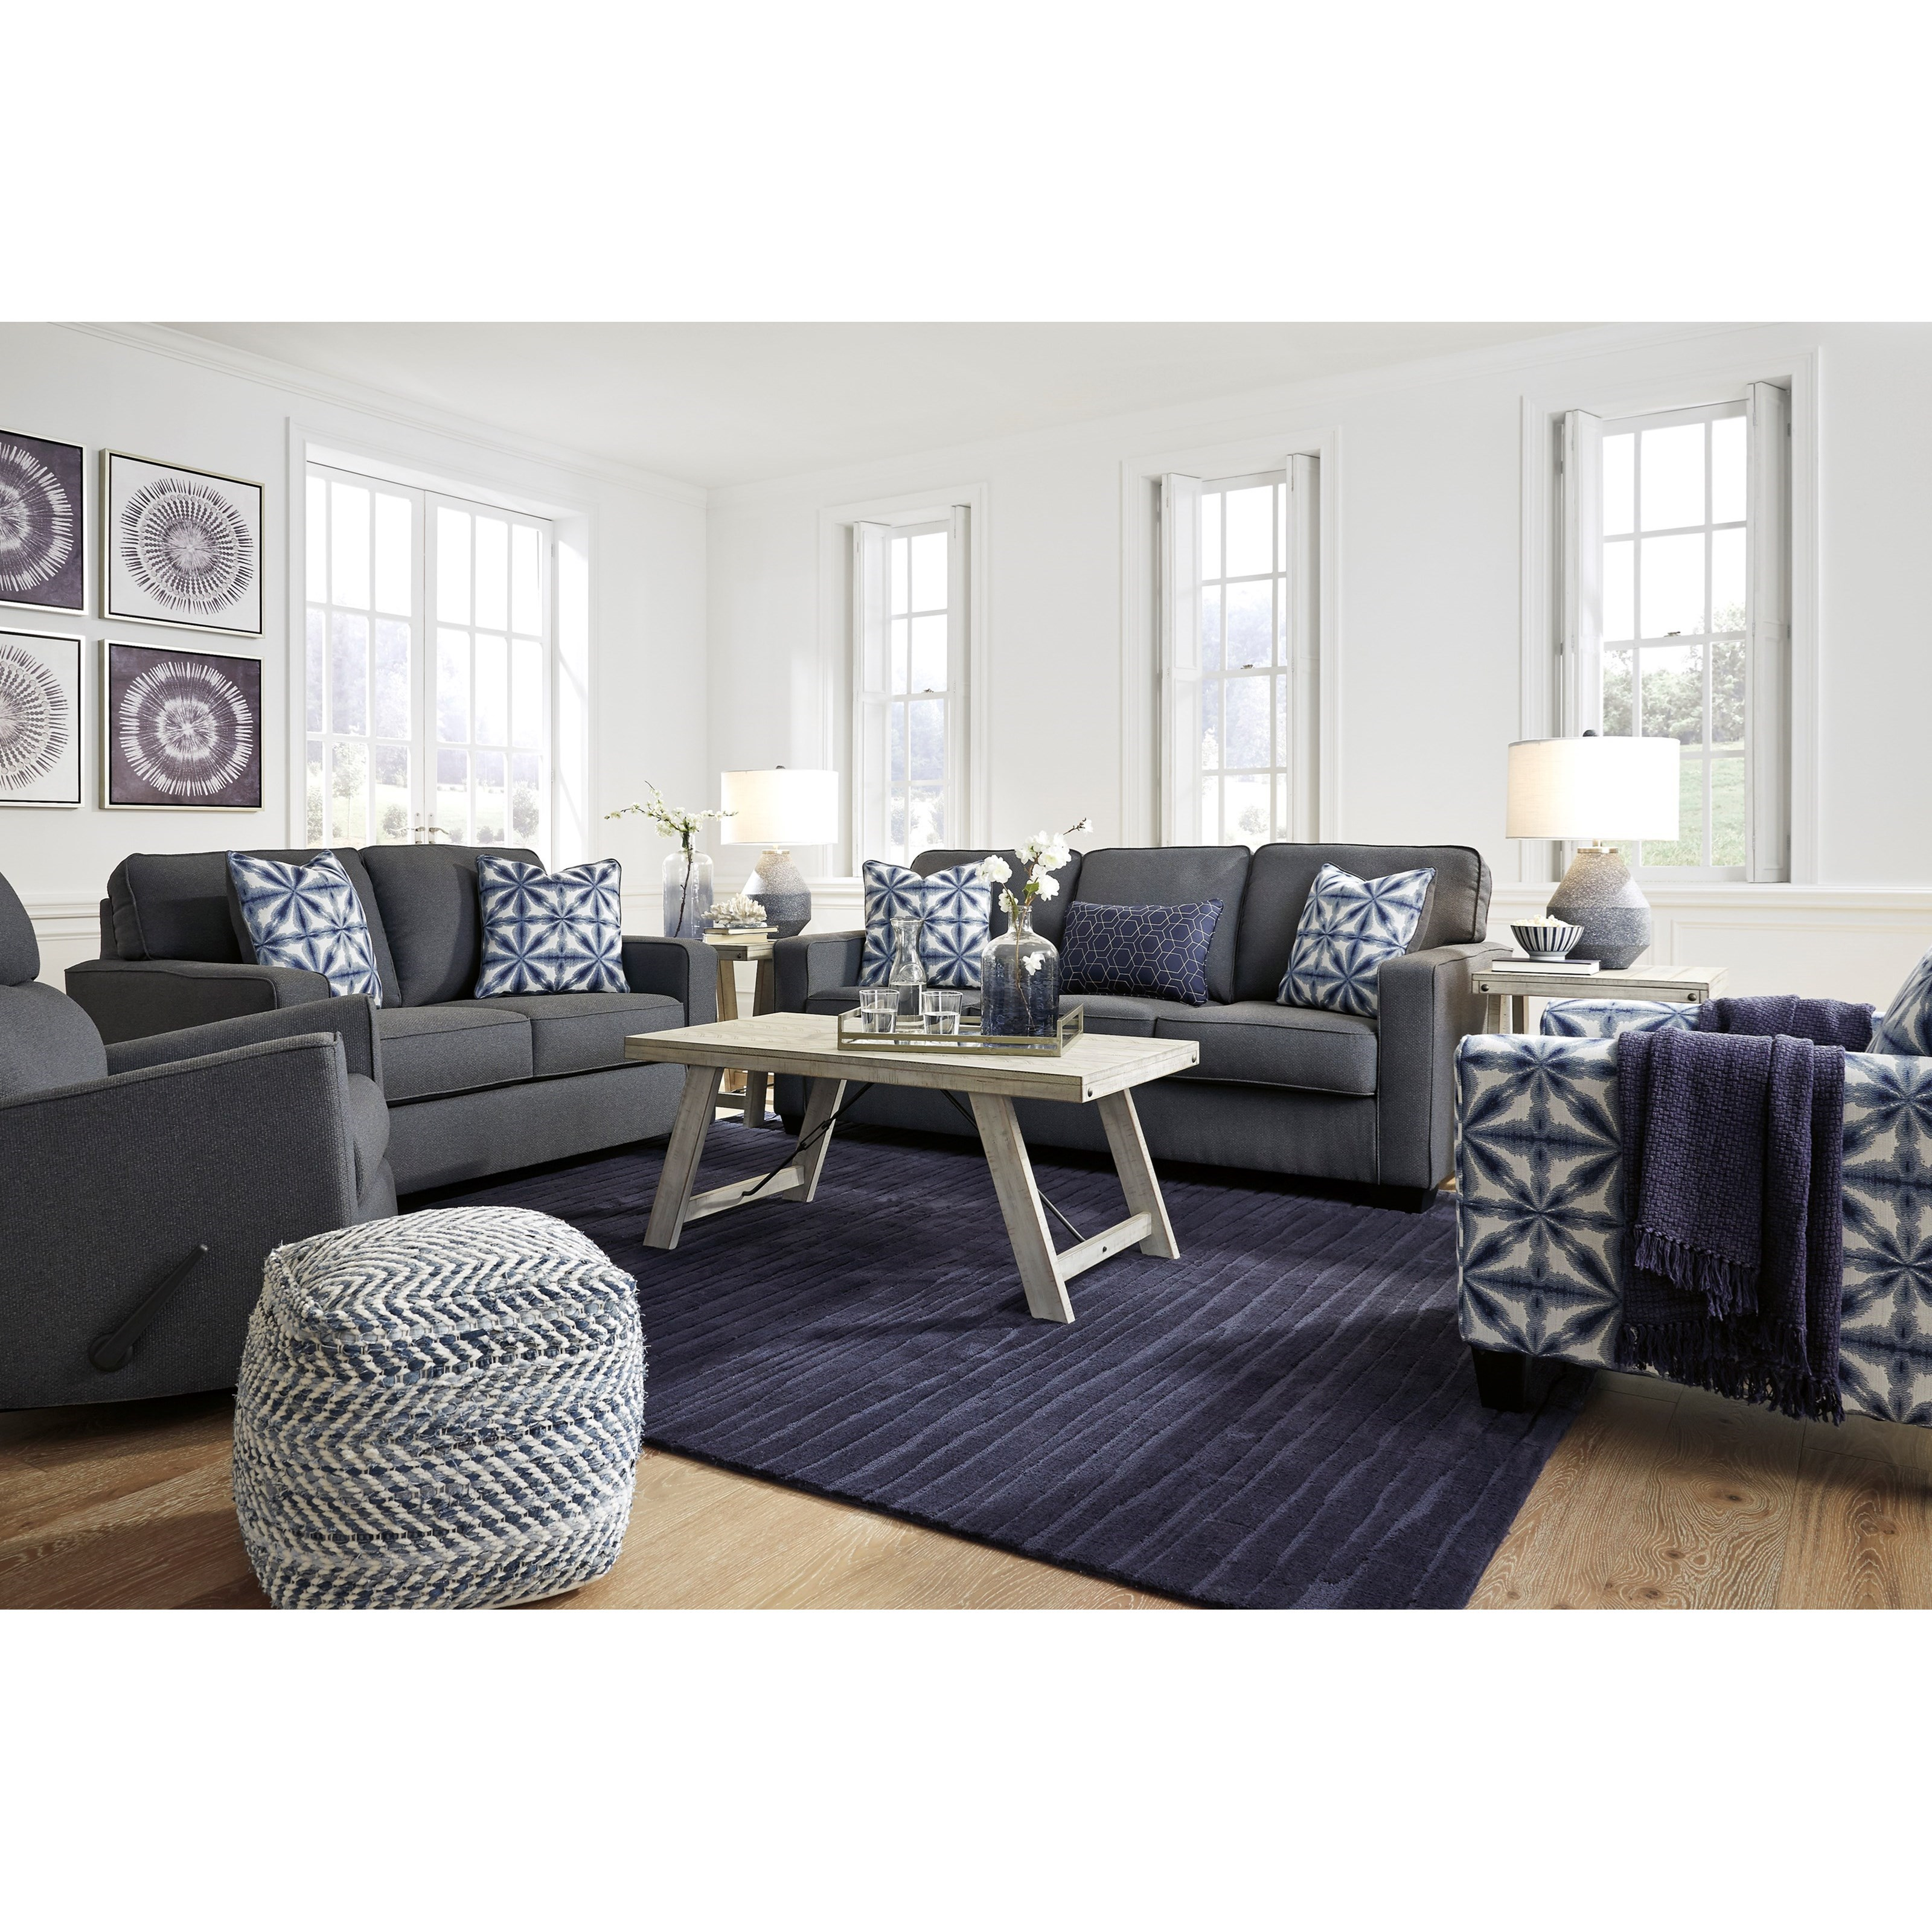 Kiessel Nuvella Living Room Group by Benchcraft at Miller Waldrop Furniture and Decor